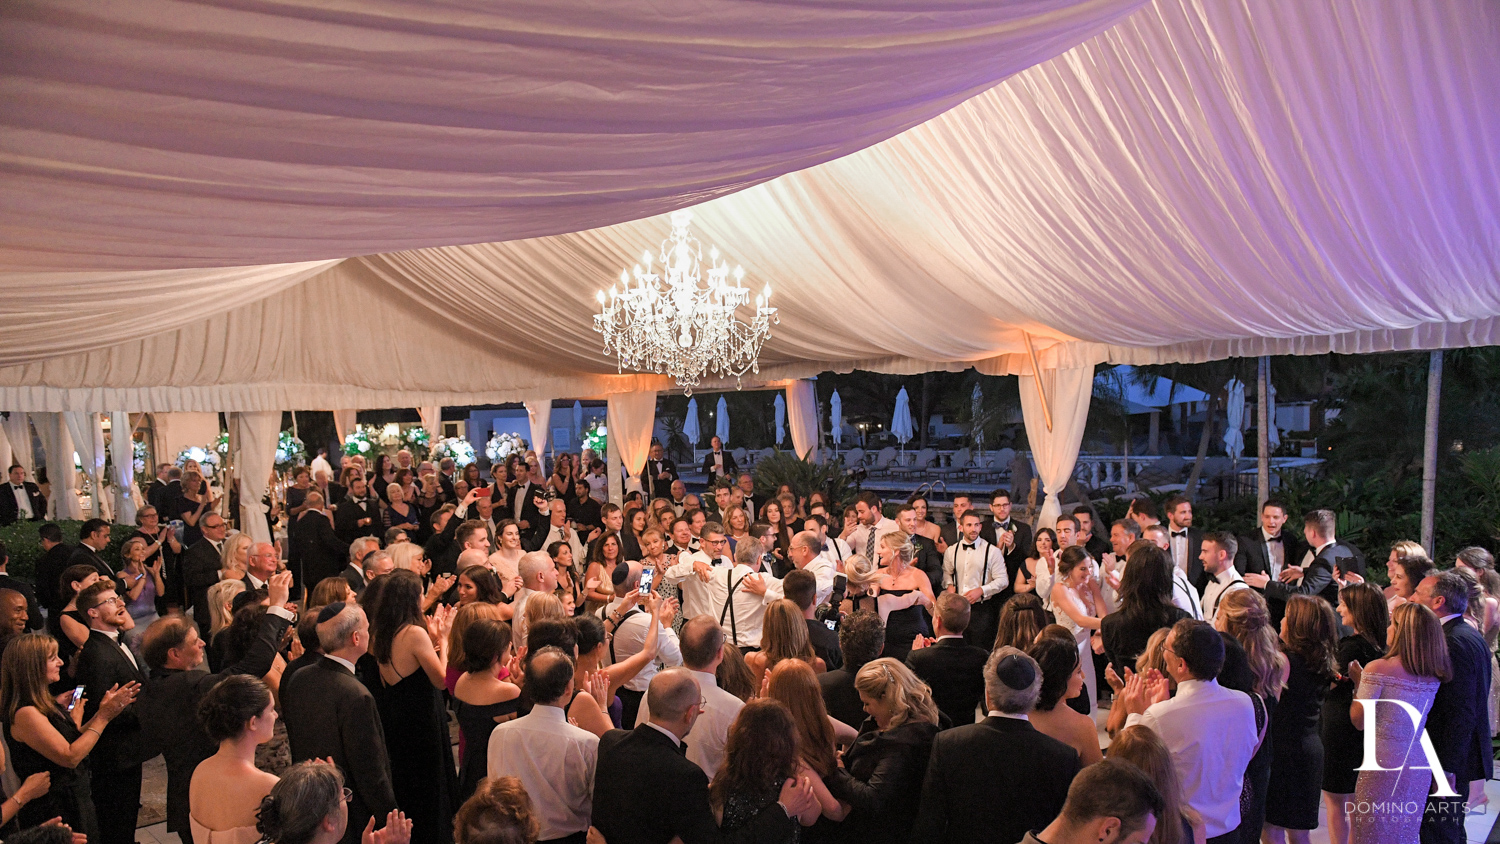 big fun party at Tropical Garden Wedding at Fisher Island Miami by Domino Arts Photography